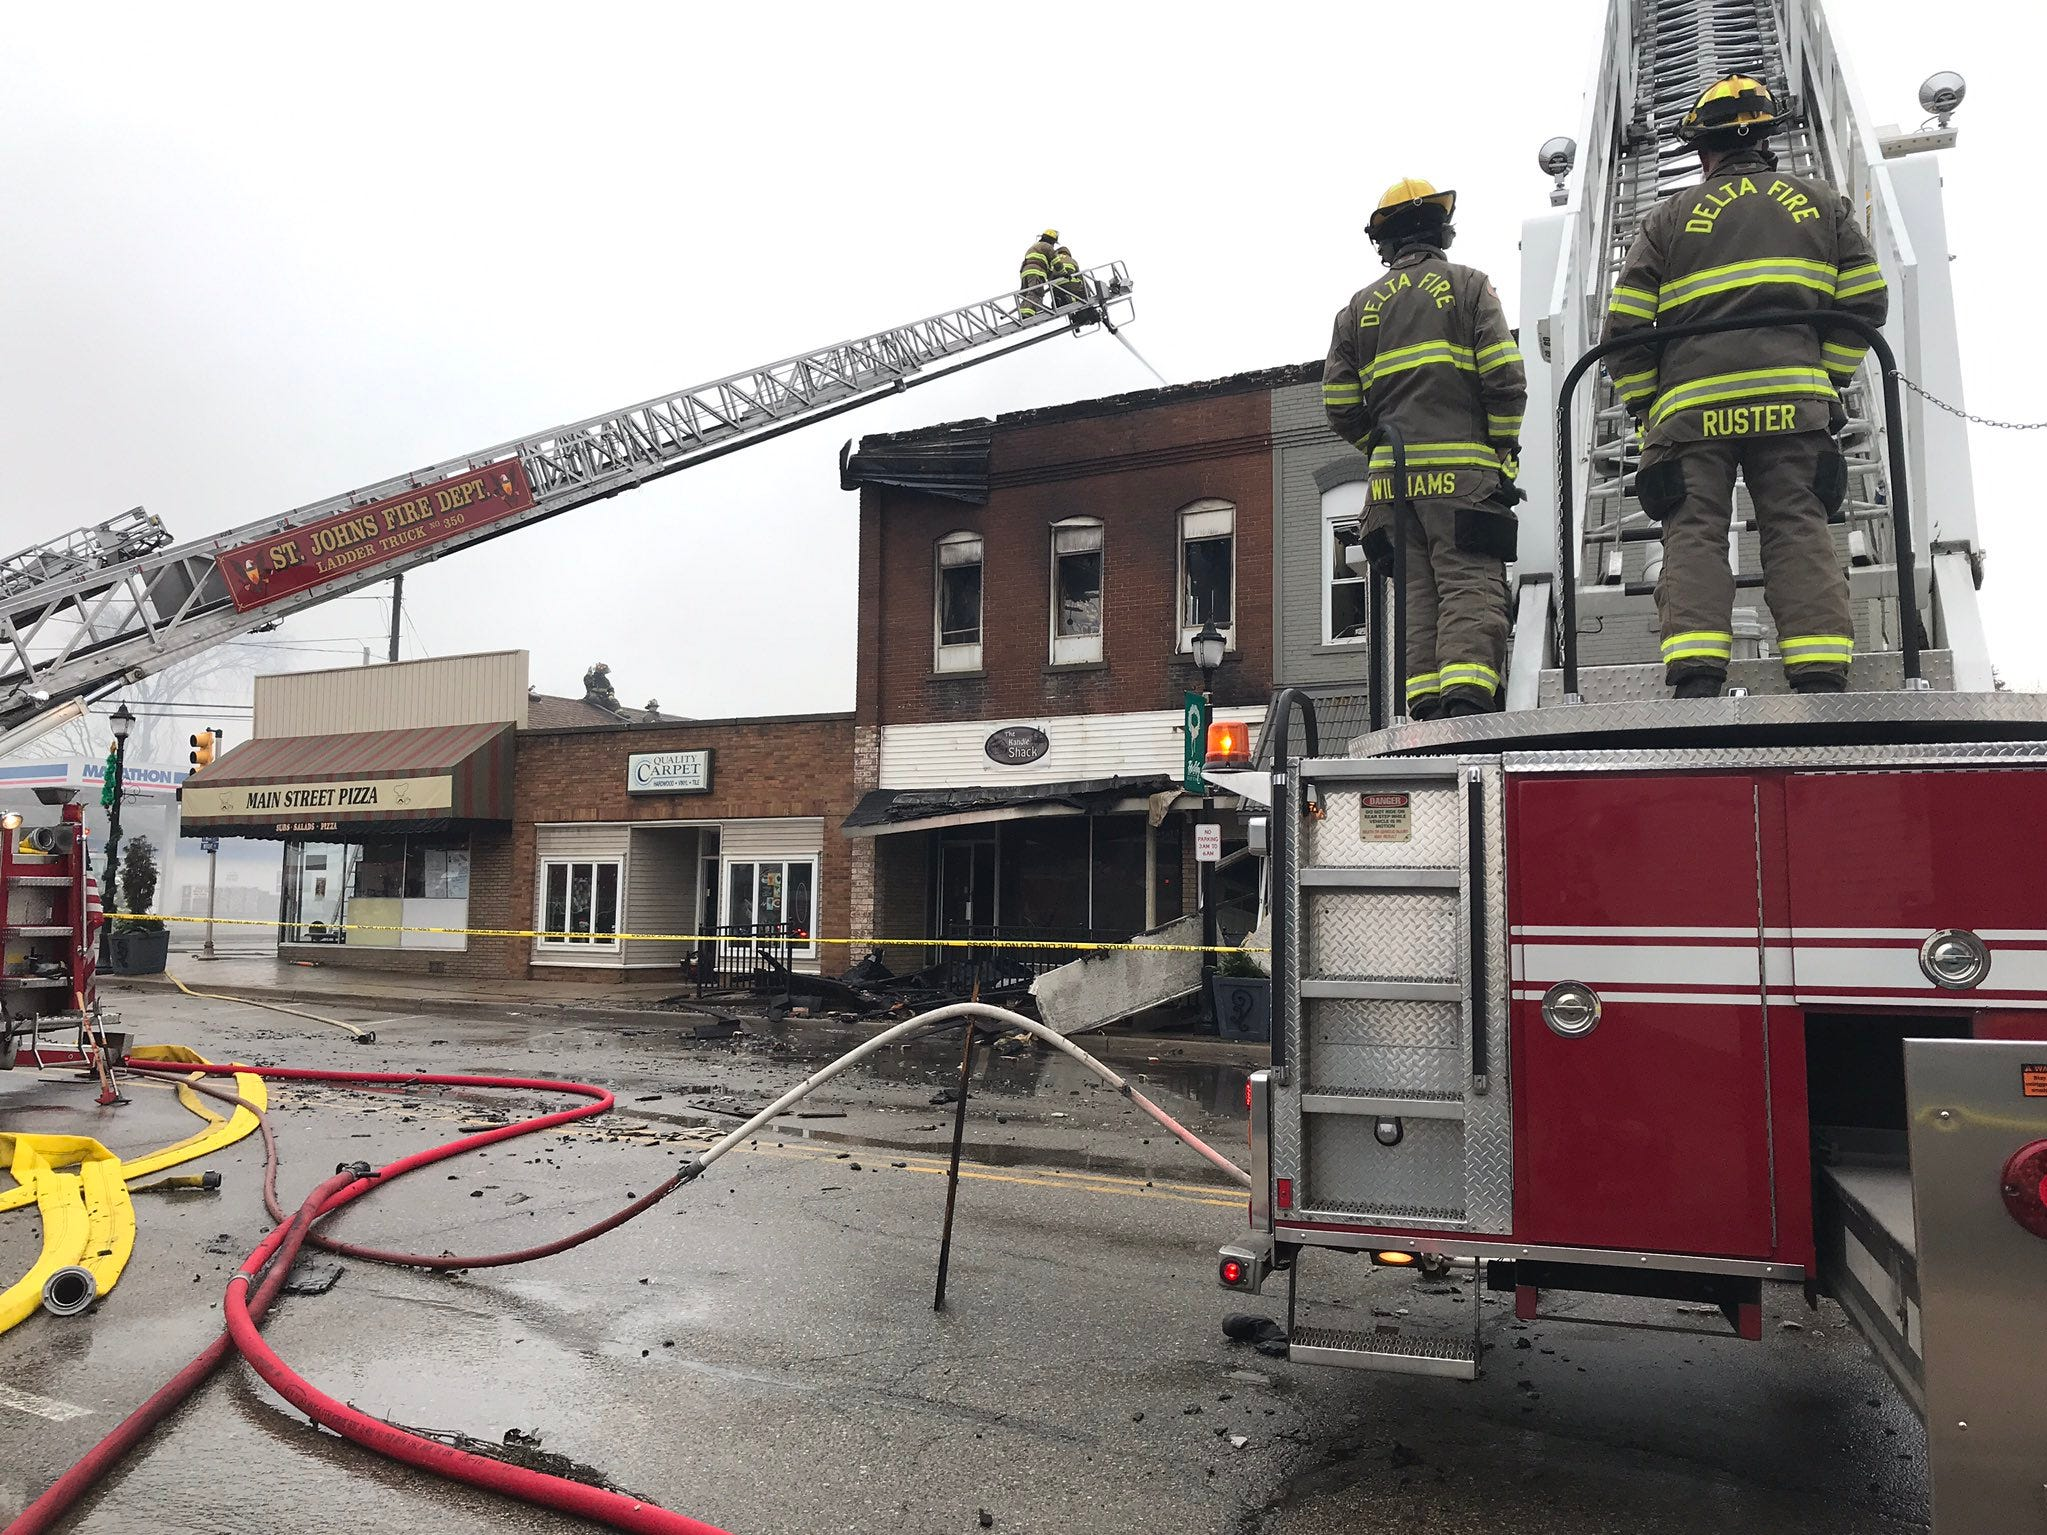 Fire departments responding to structure fire in downtown Fowler.